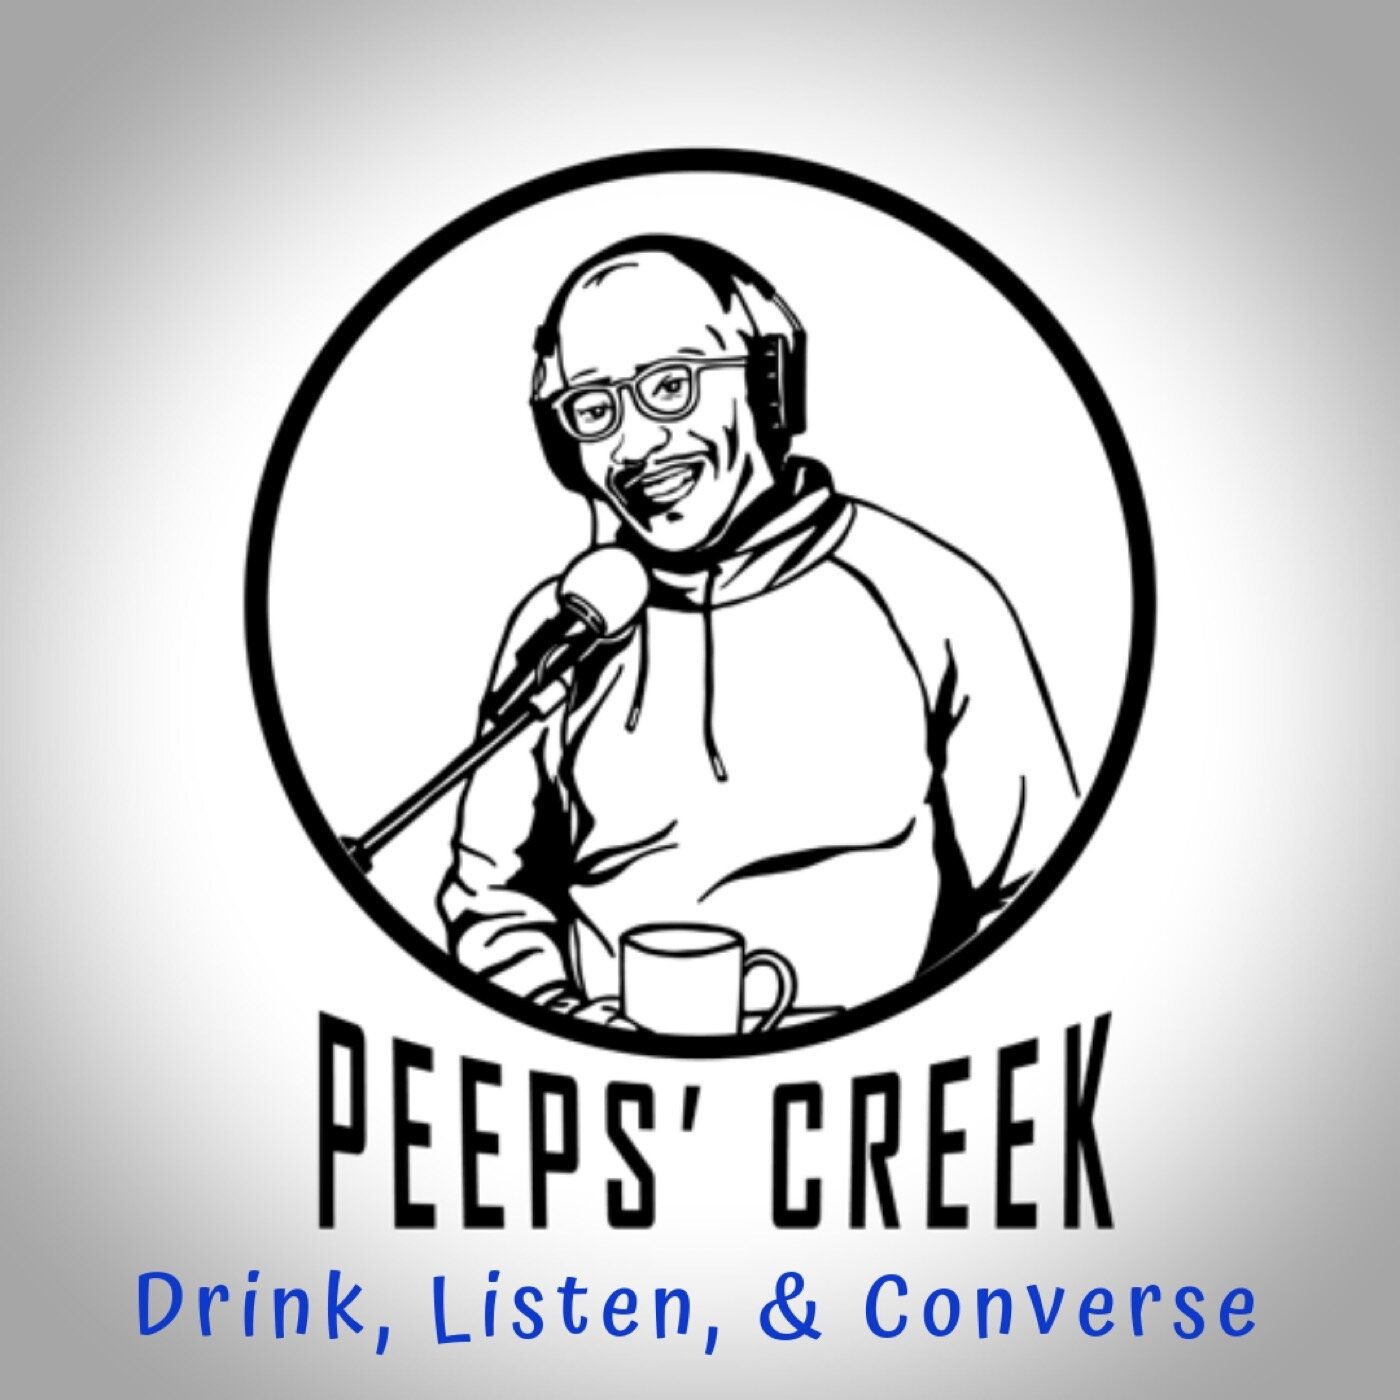 Welcome to Peeps' Creek